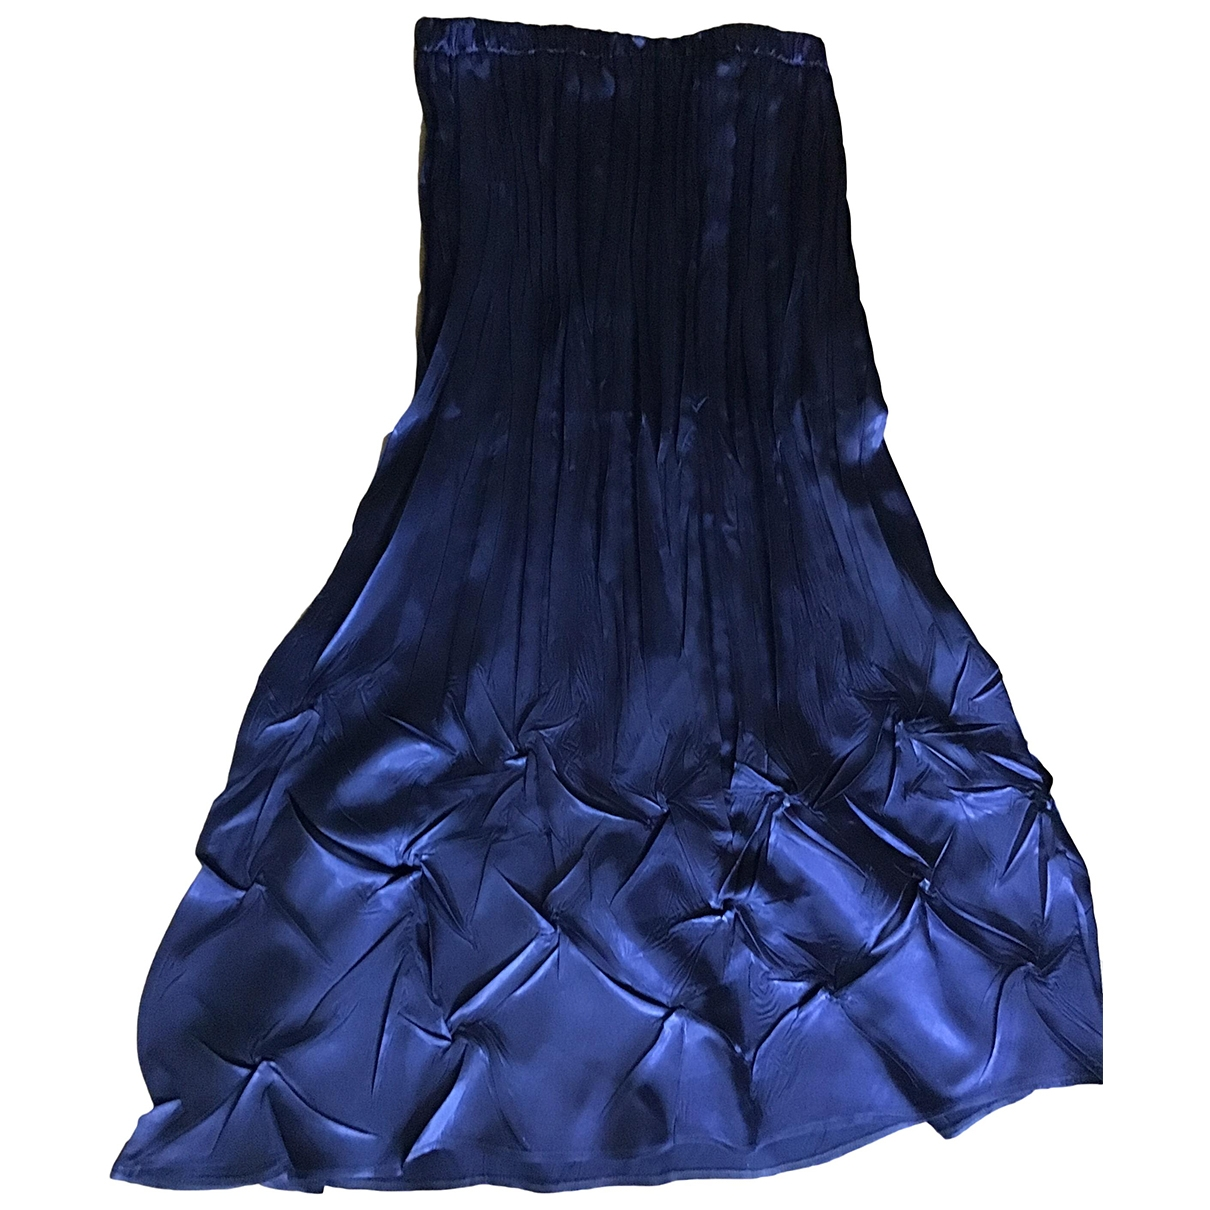 Non Signé / Unsigned \N Blue skirt for Women One Size FR